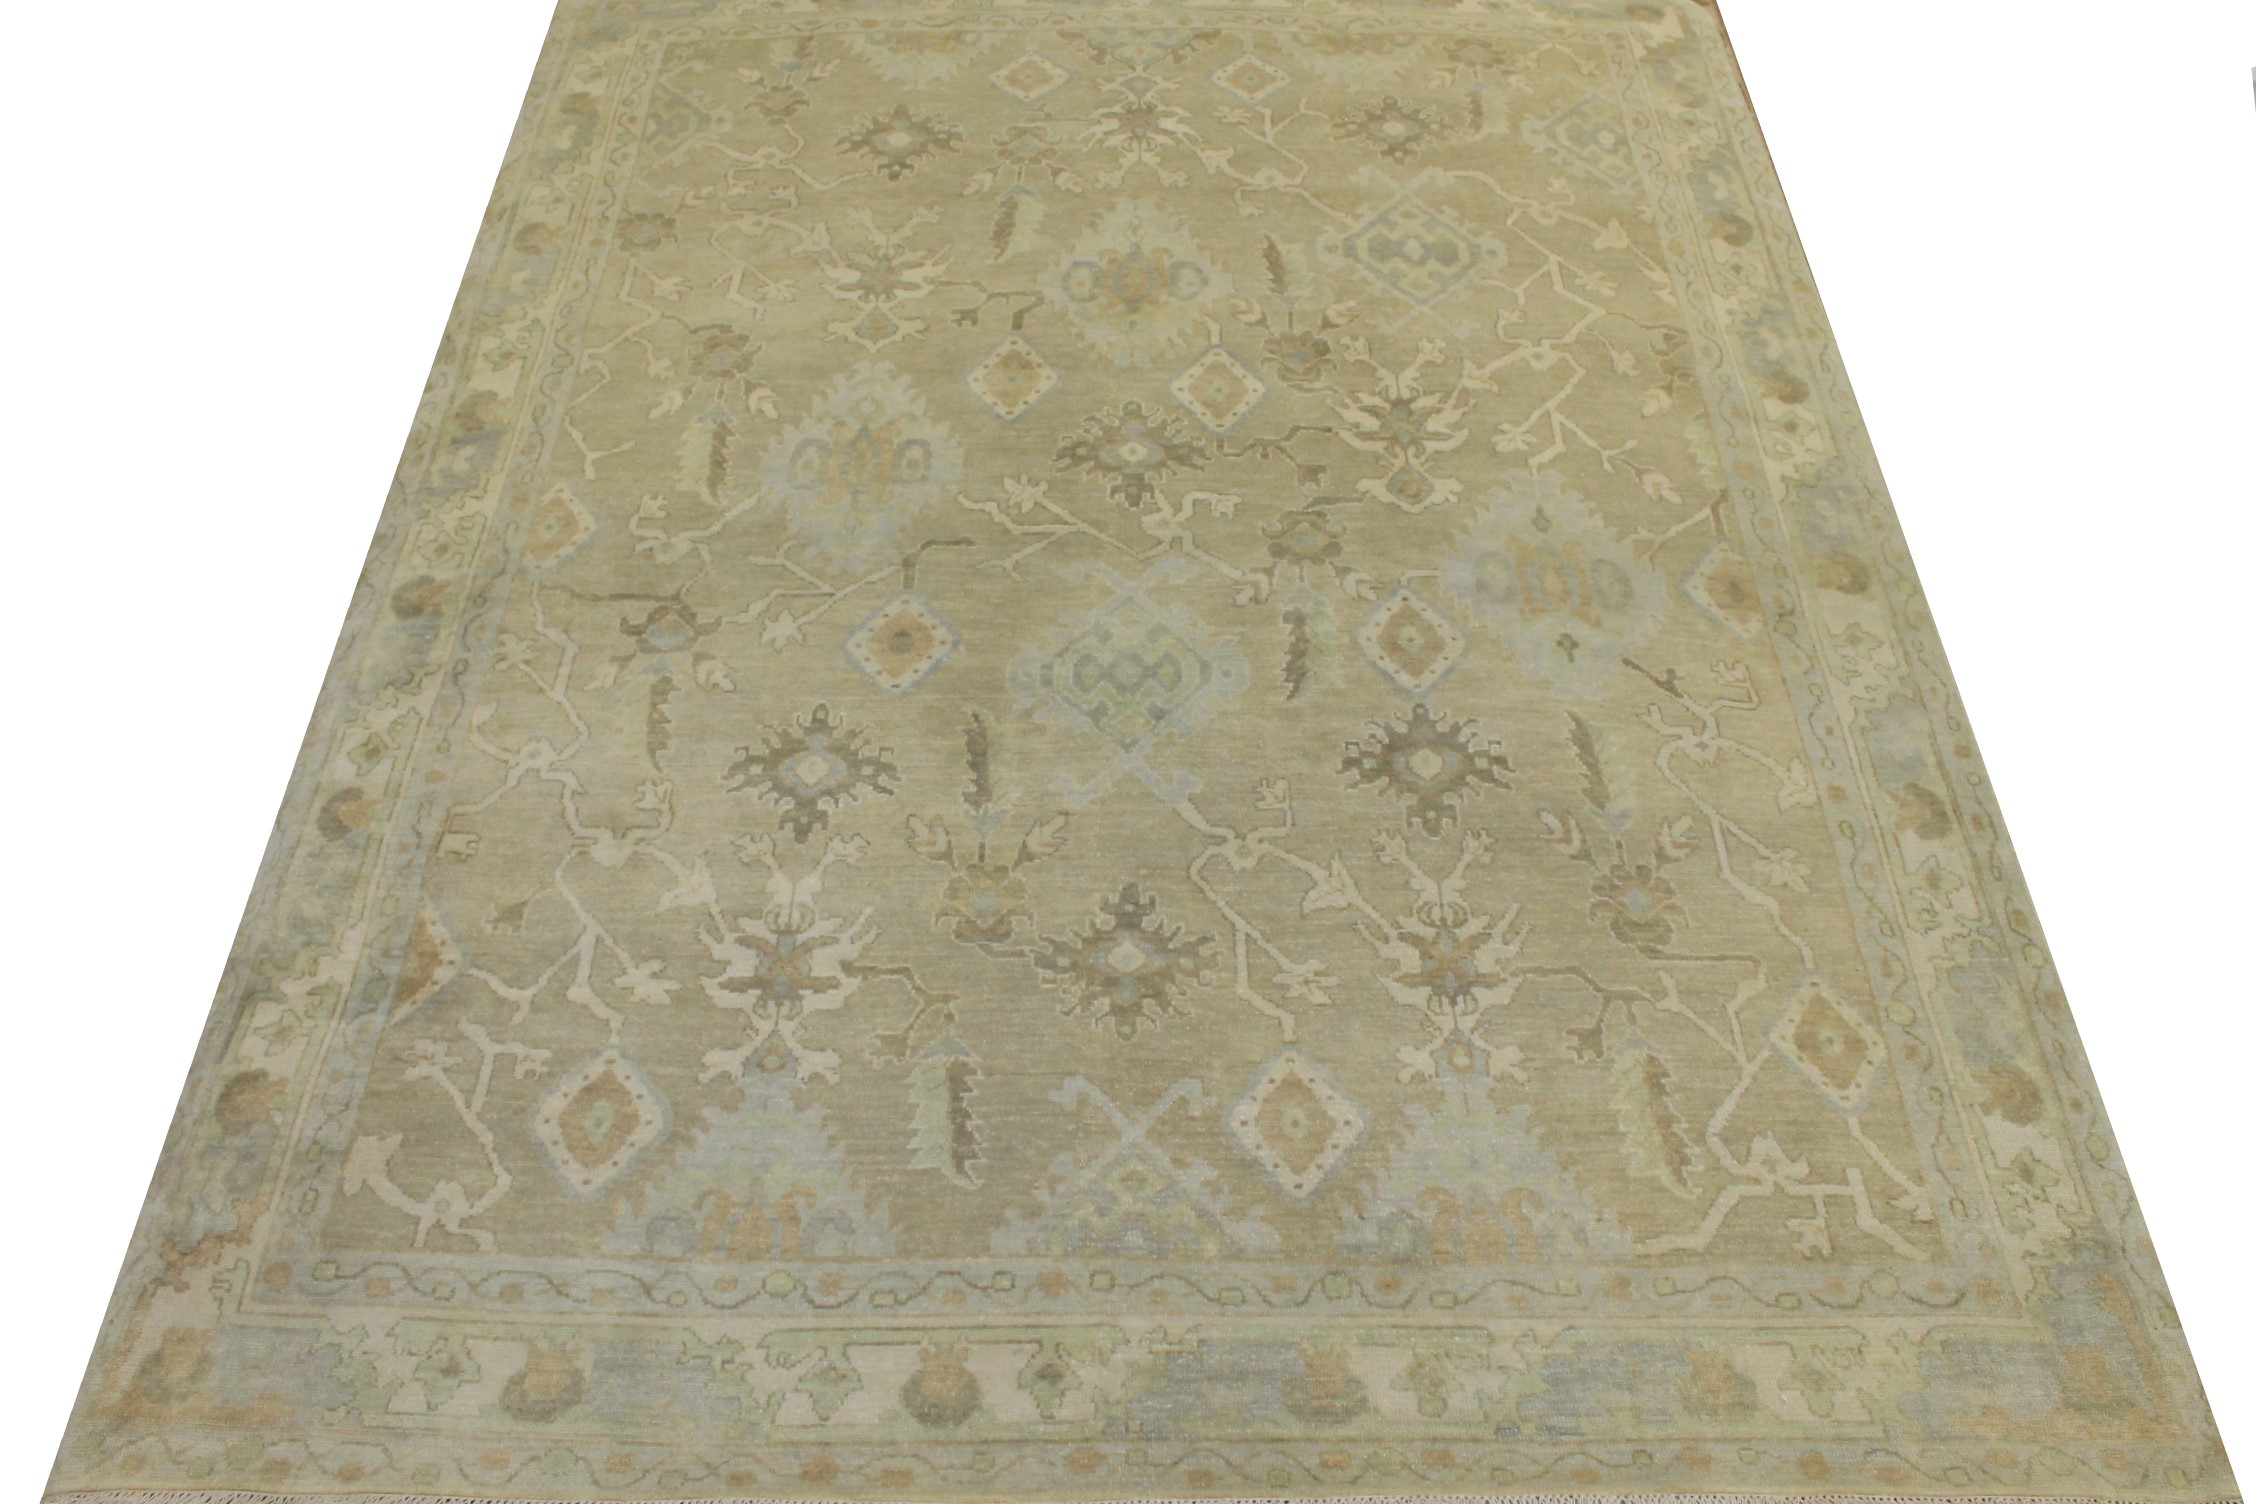 8x10 Oushak Hand Knotted Wool Area Rug - MR024319